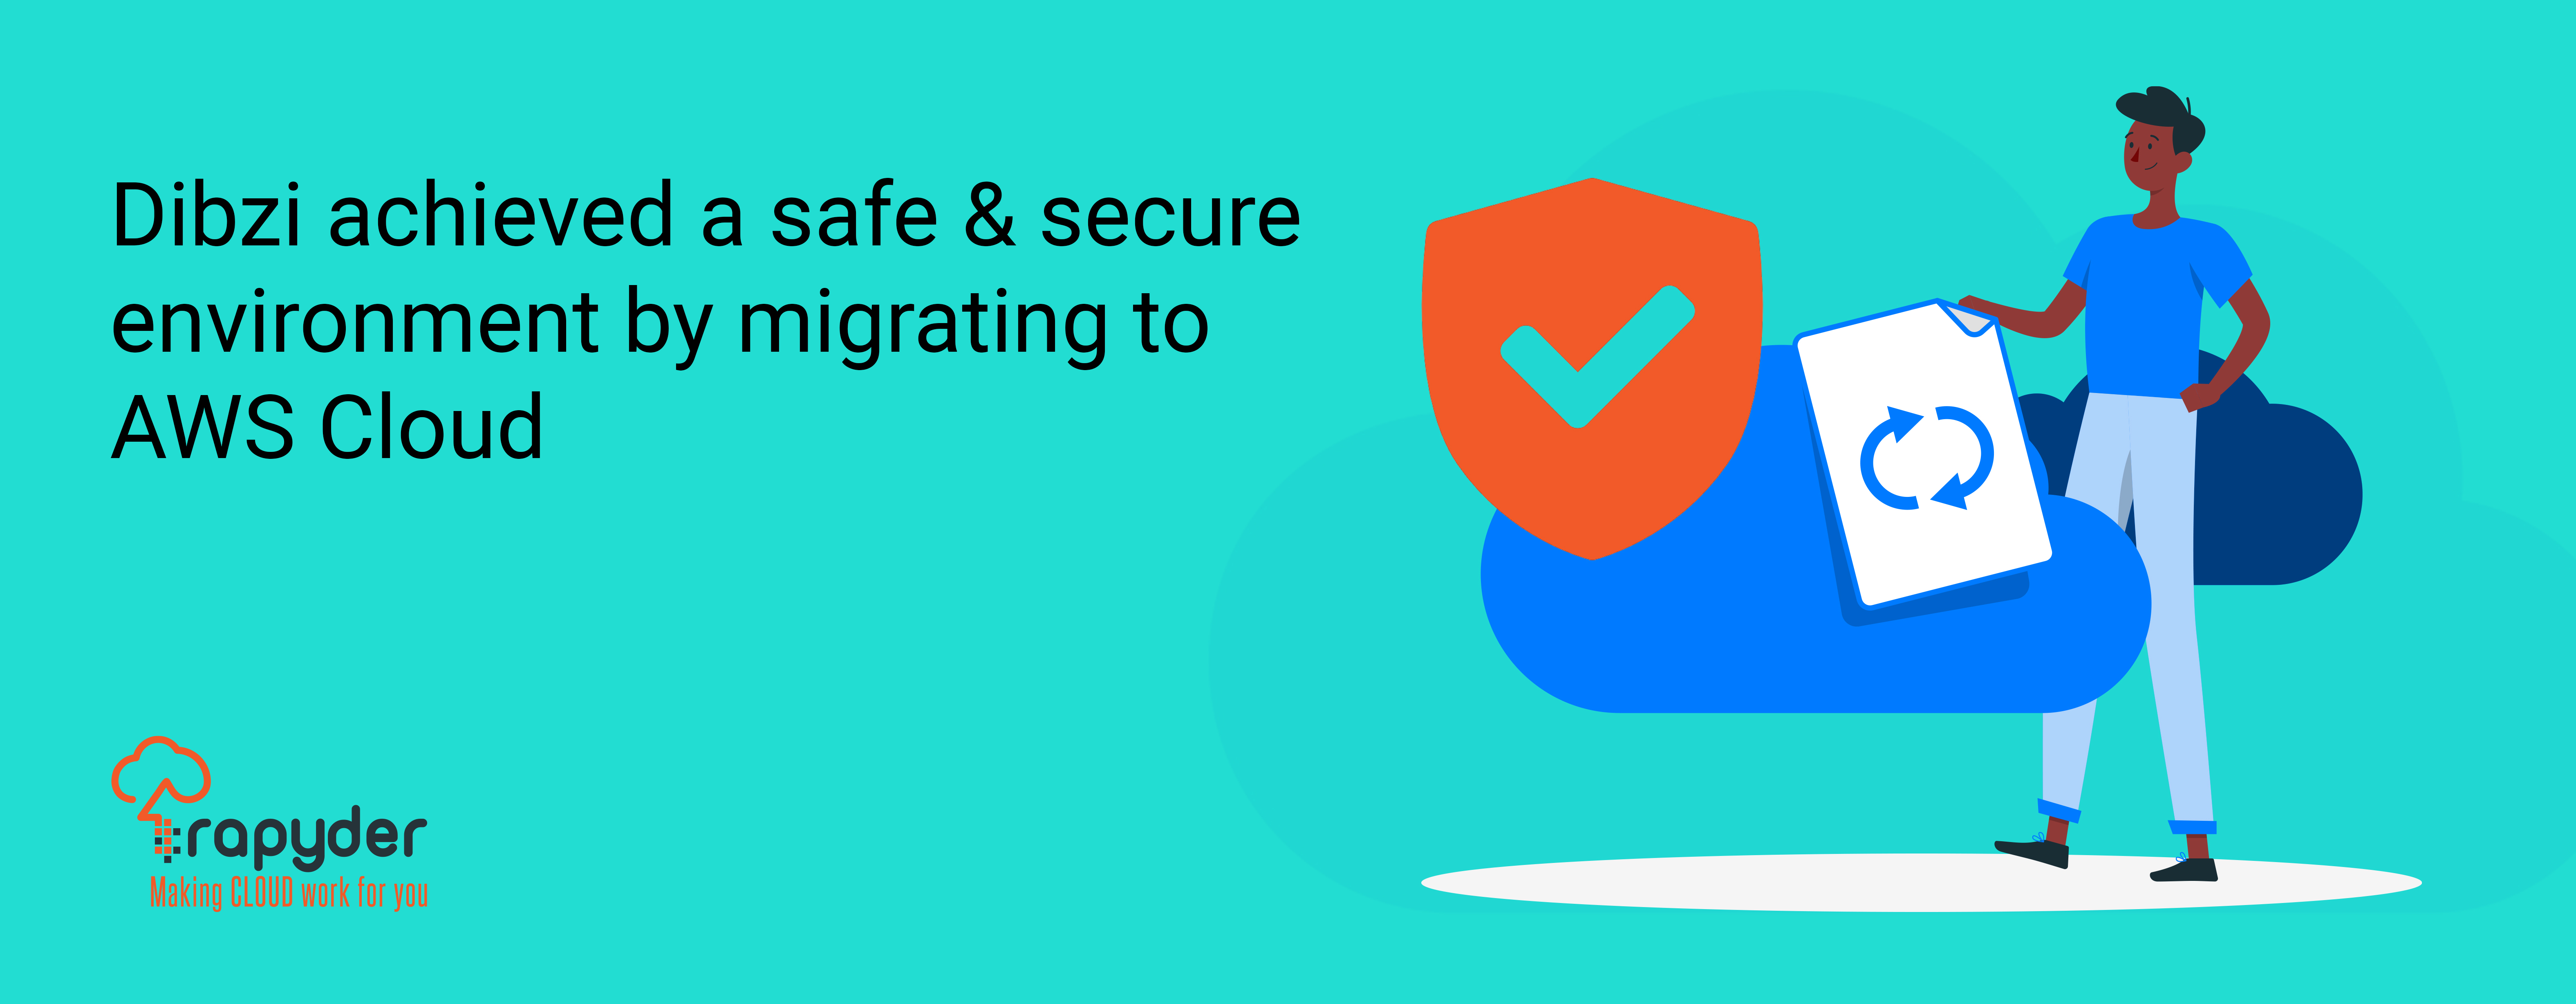 Dibzi achieved a safe & secure environment by migrating to AWS cloud